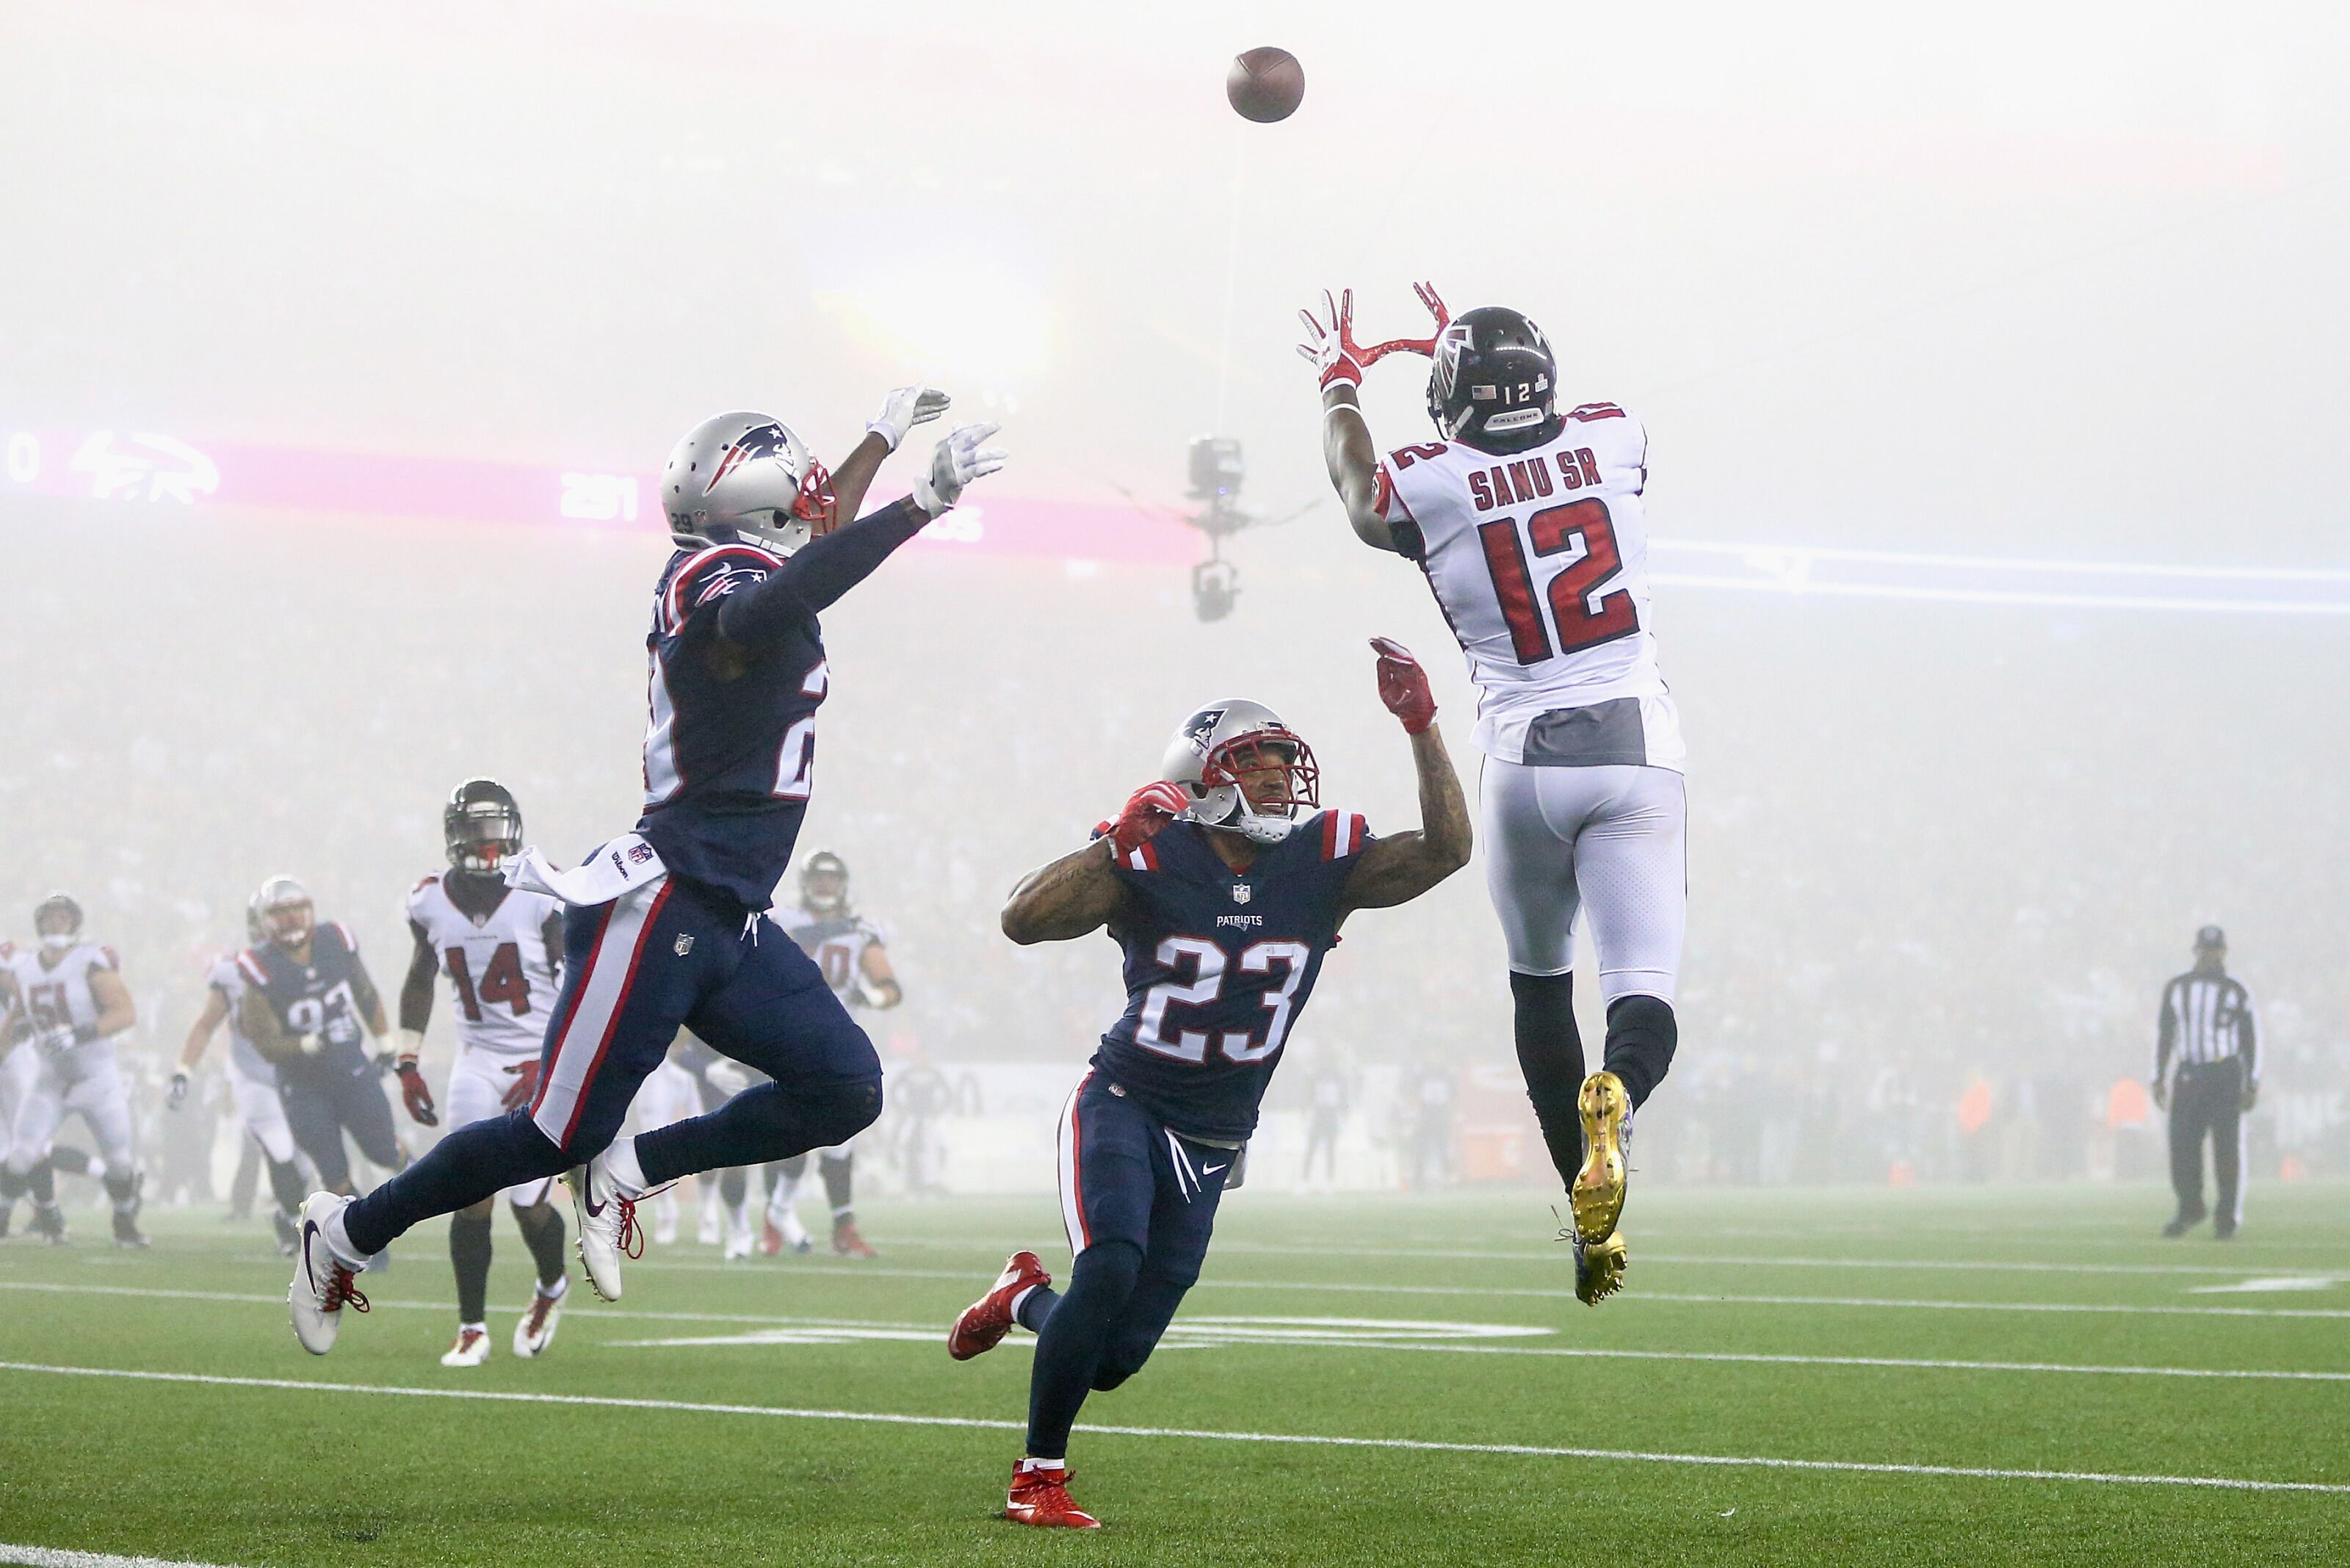 Mohamed Sanu trade: Breaking down deal for Patriots, Falcons